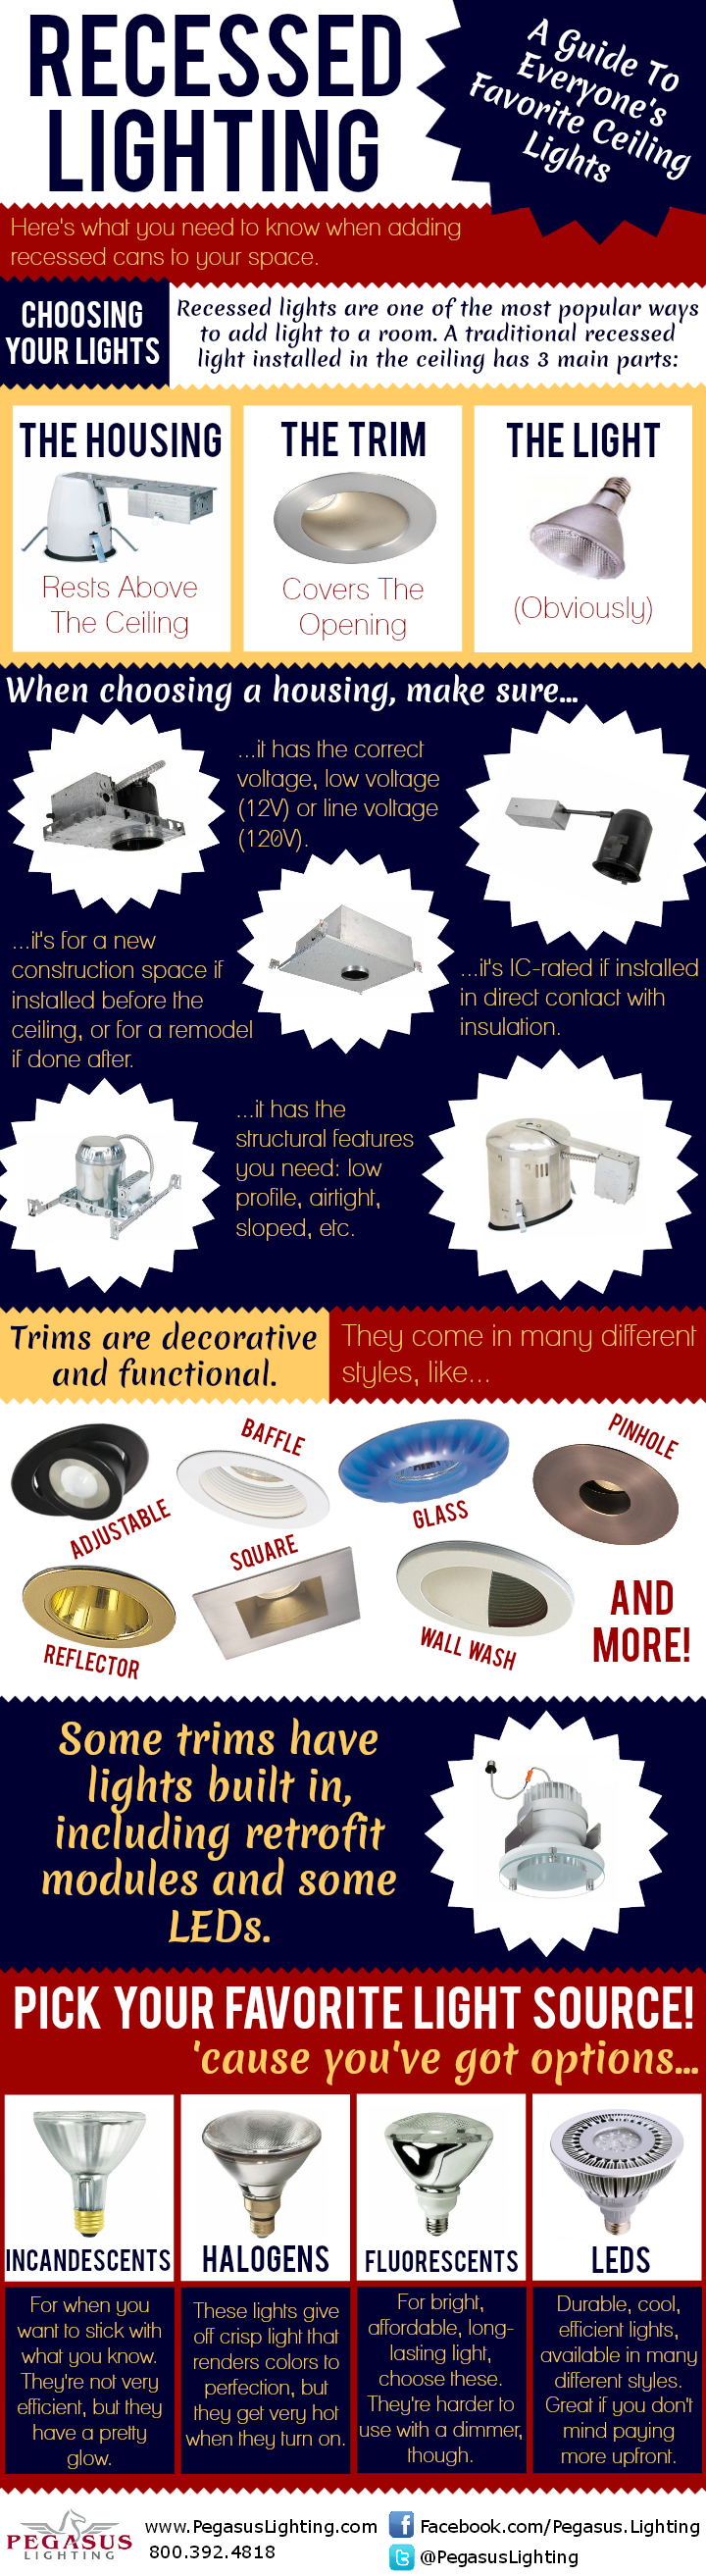 Infographic recessed lighting guide infographic lights and choosing recessed lights an infographic aloadofball Choice Image